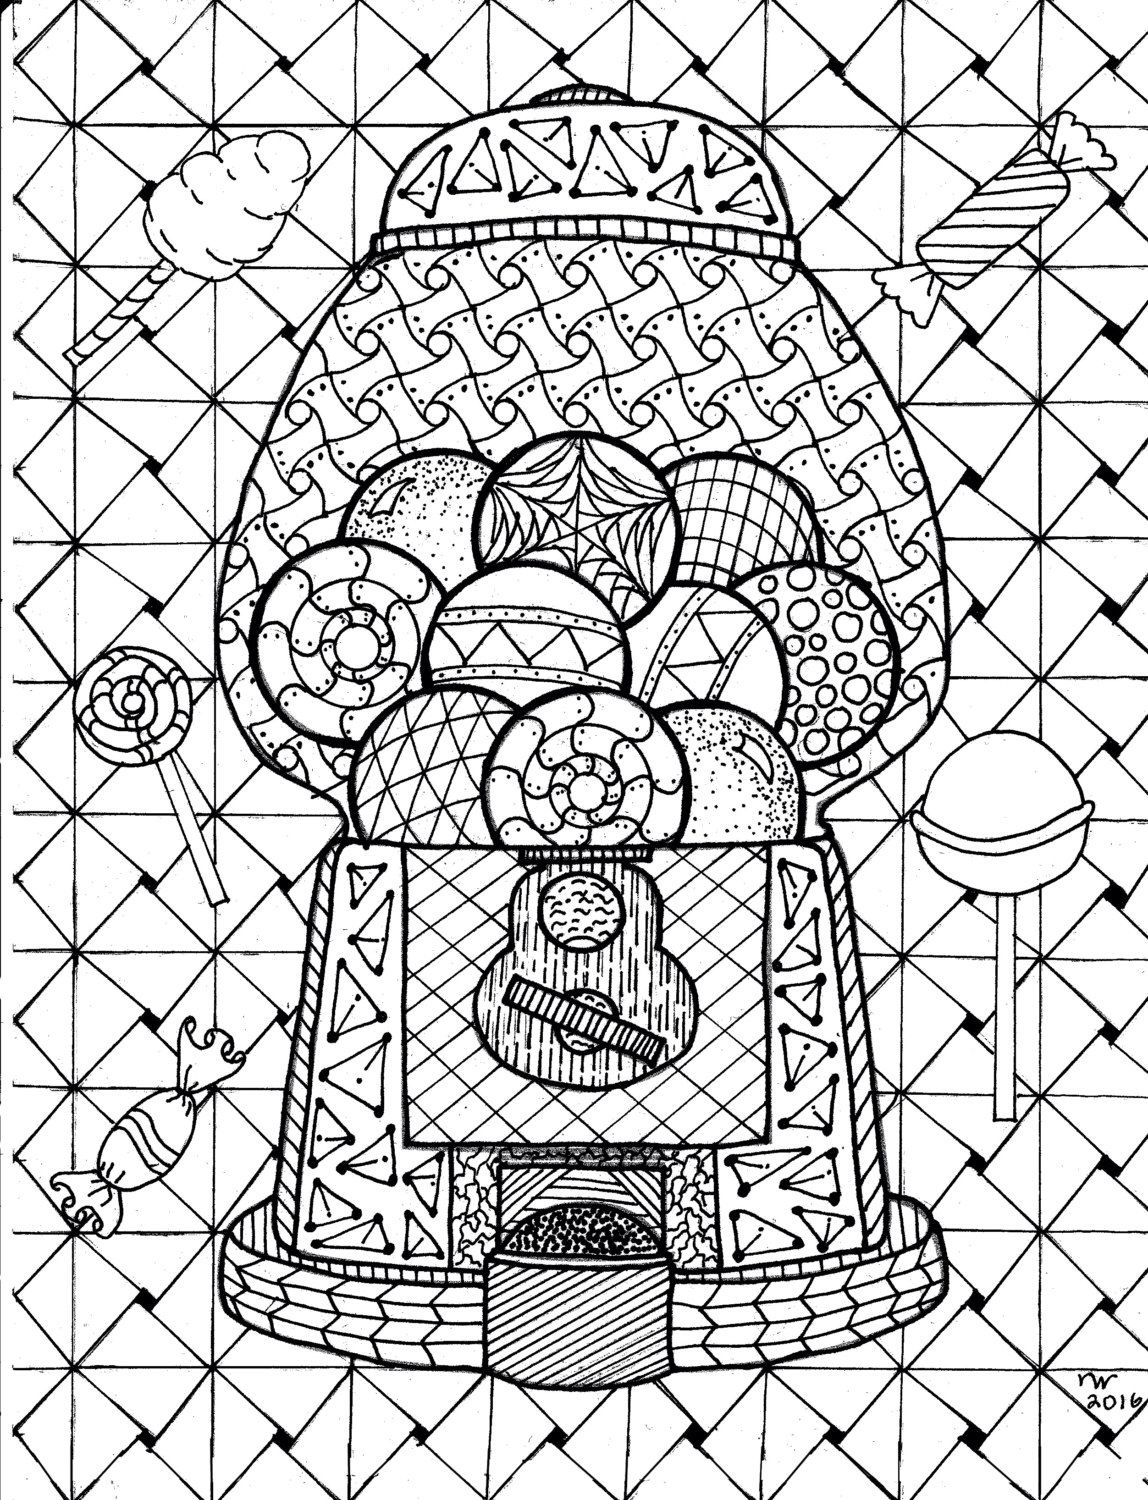 Gumball Machine Zentangle Coloring Page By